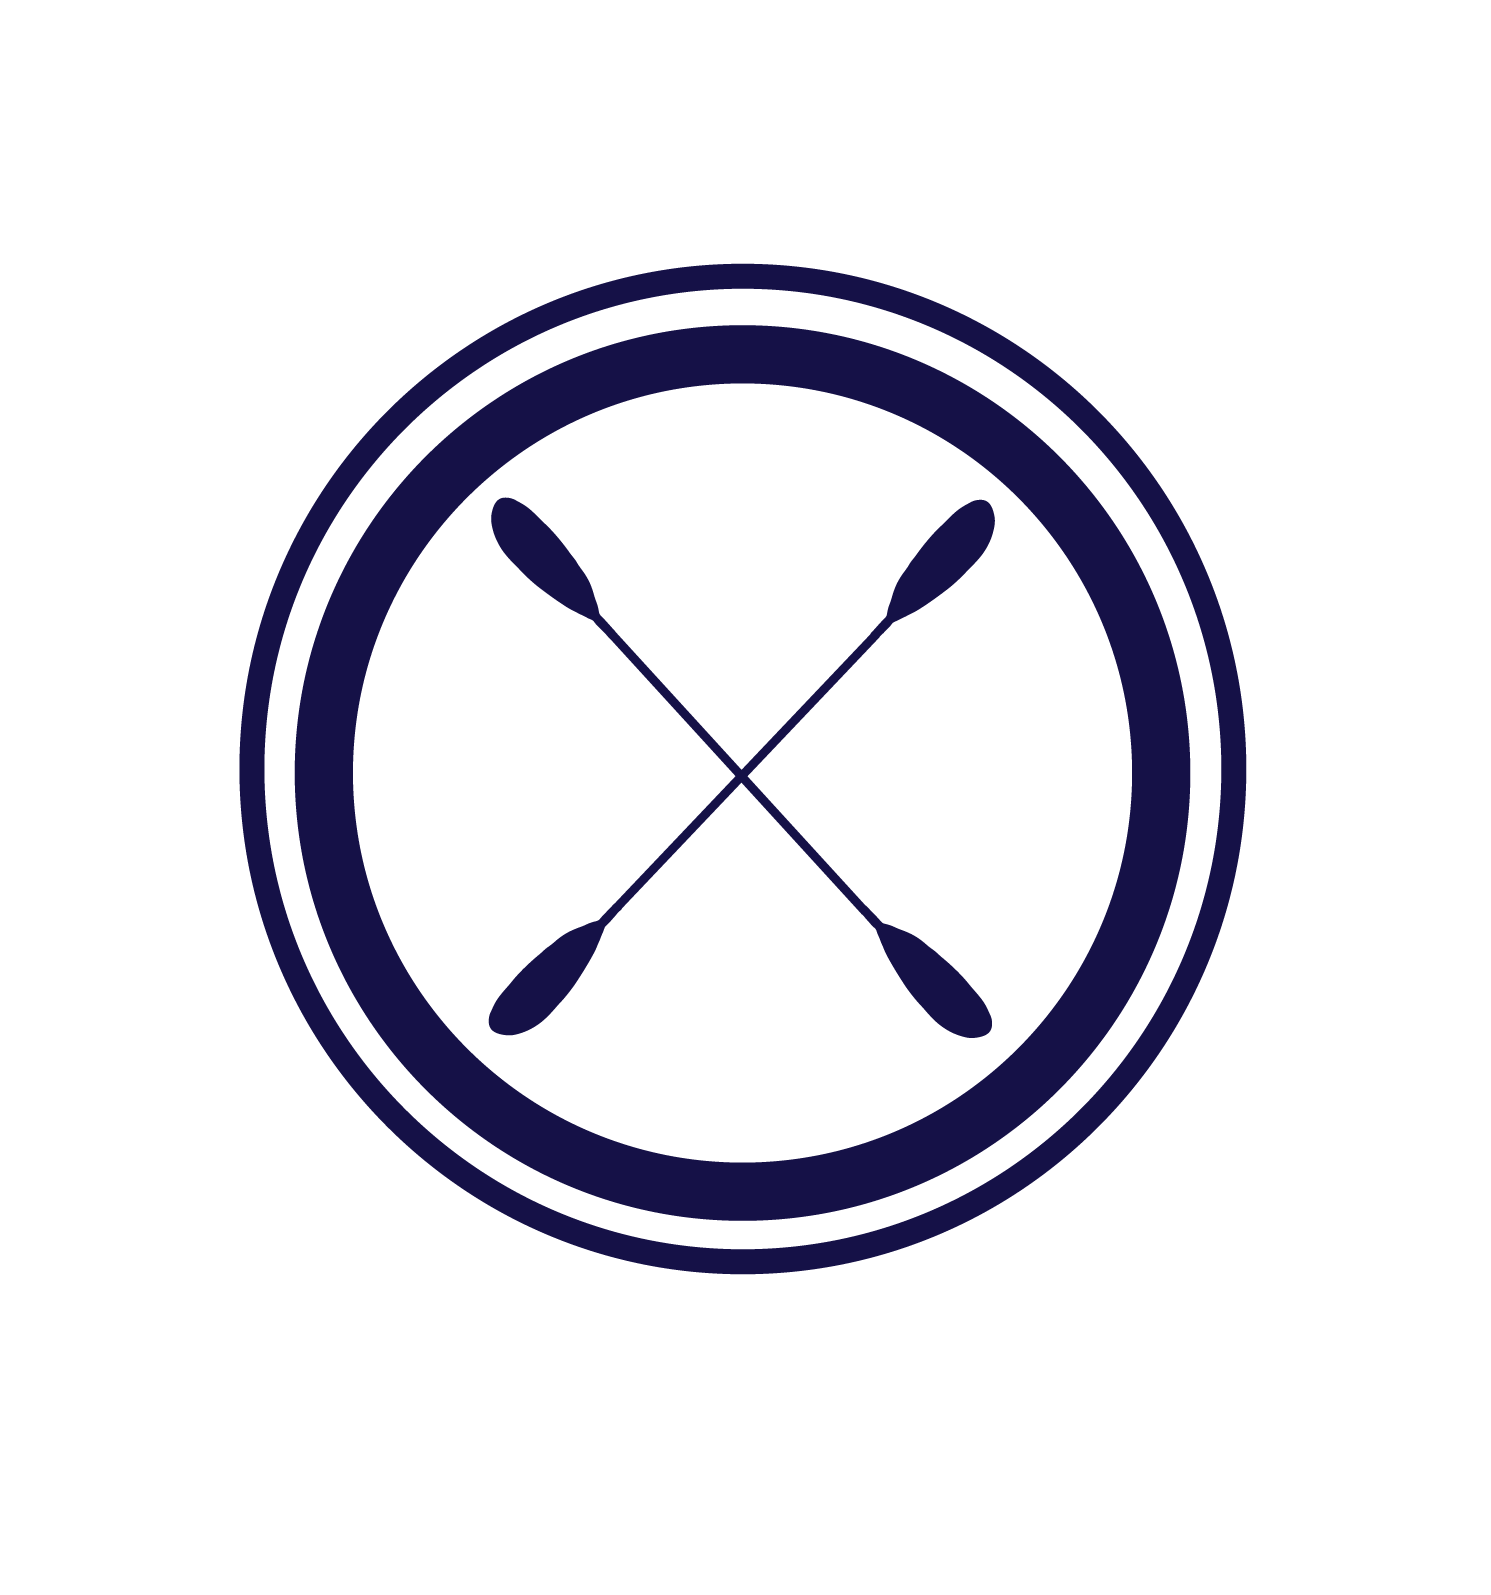 rushcutters bay paddle sports